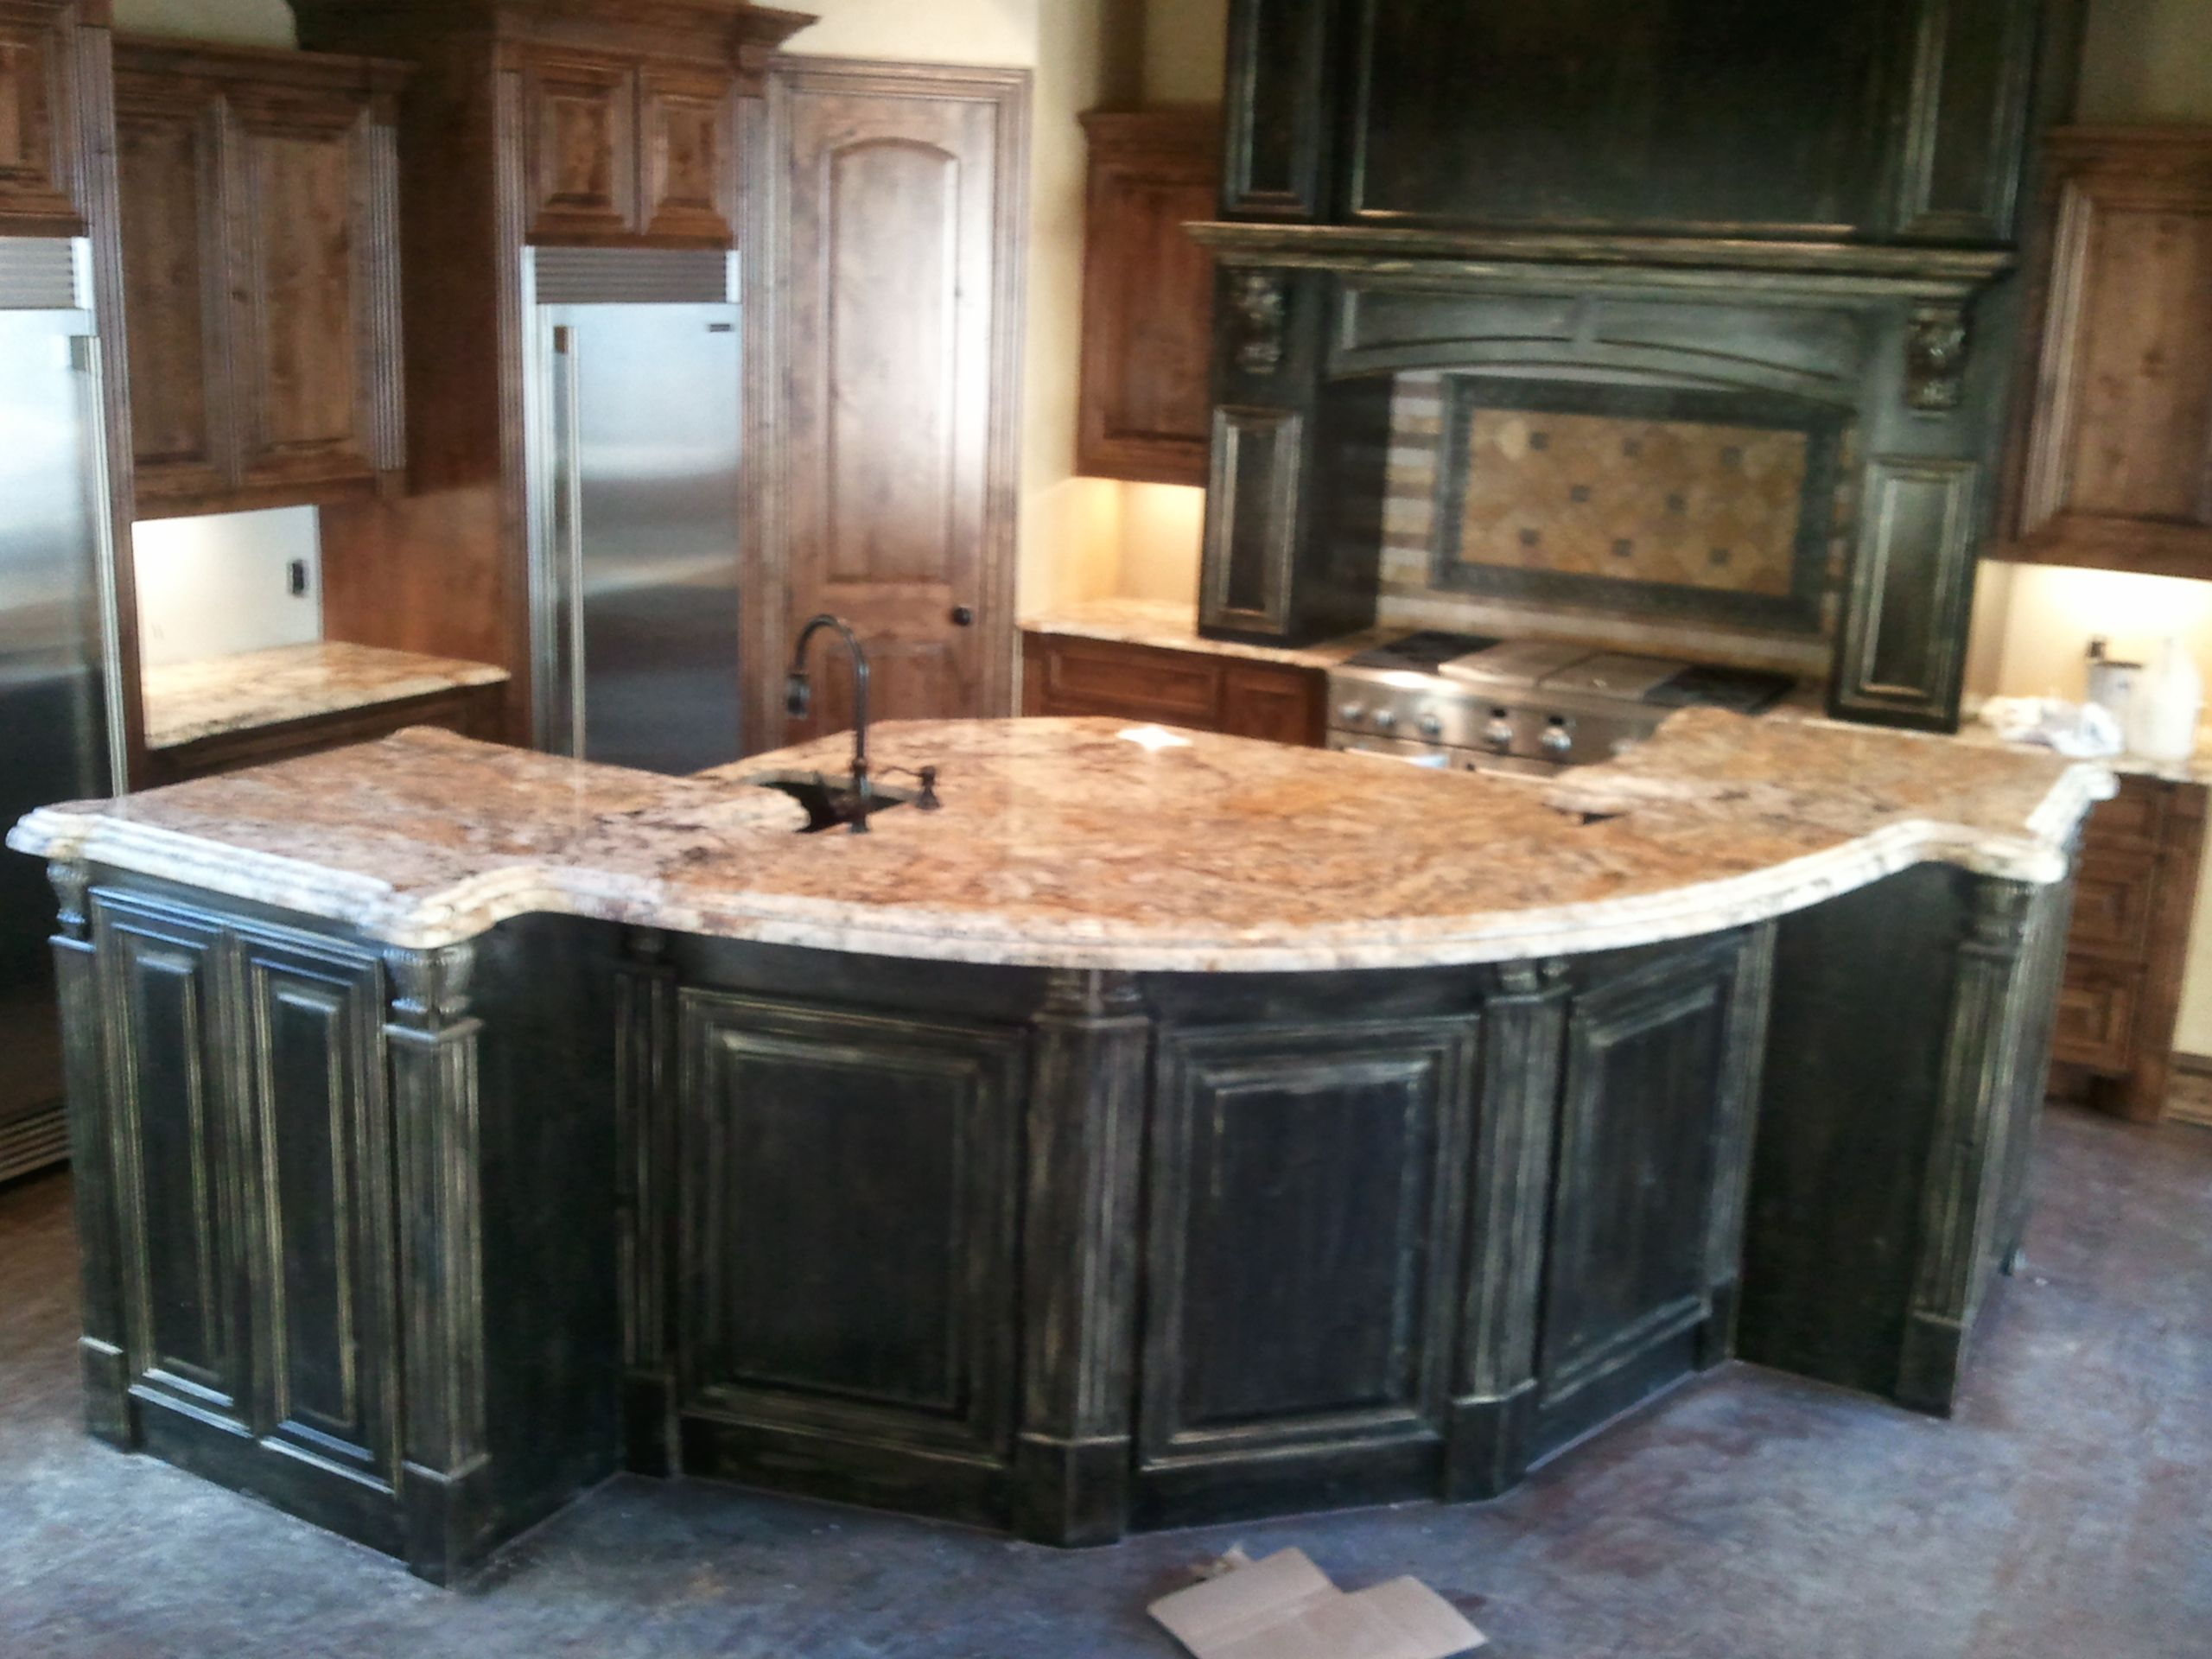 Betularie Granite with BlackGold distressed Cabinets